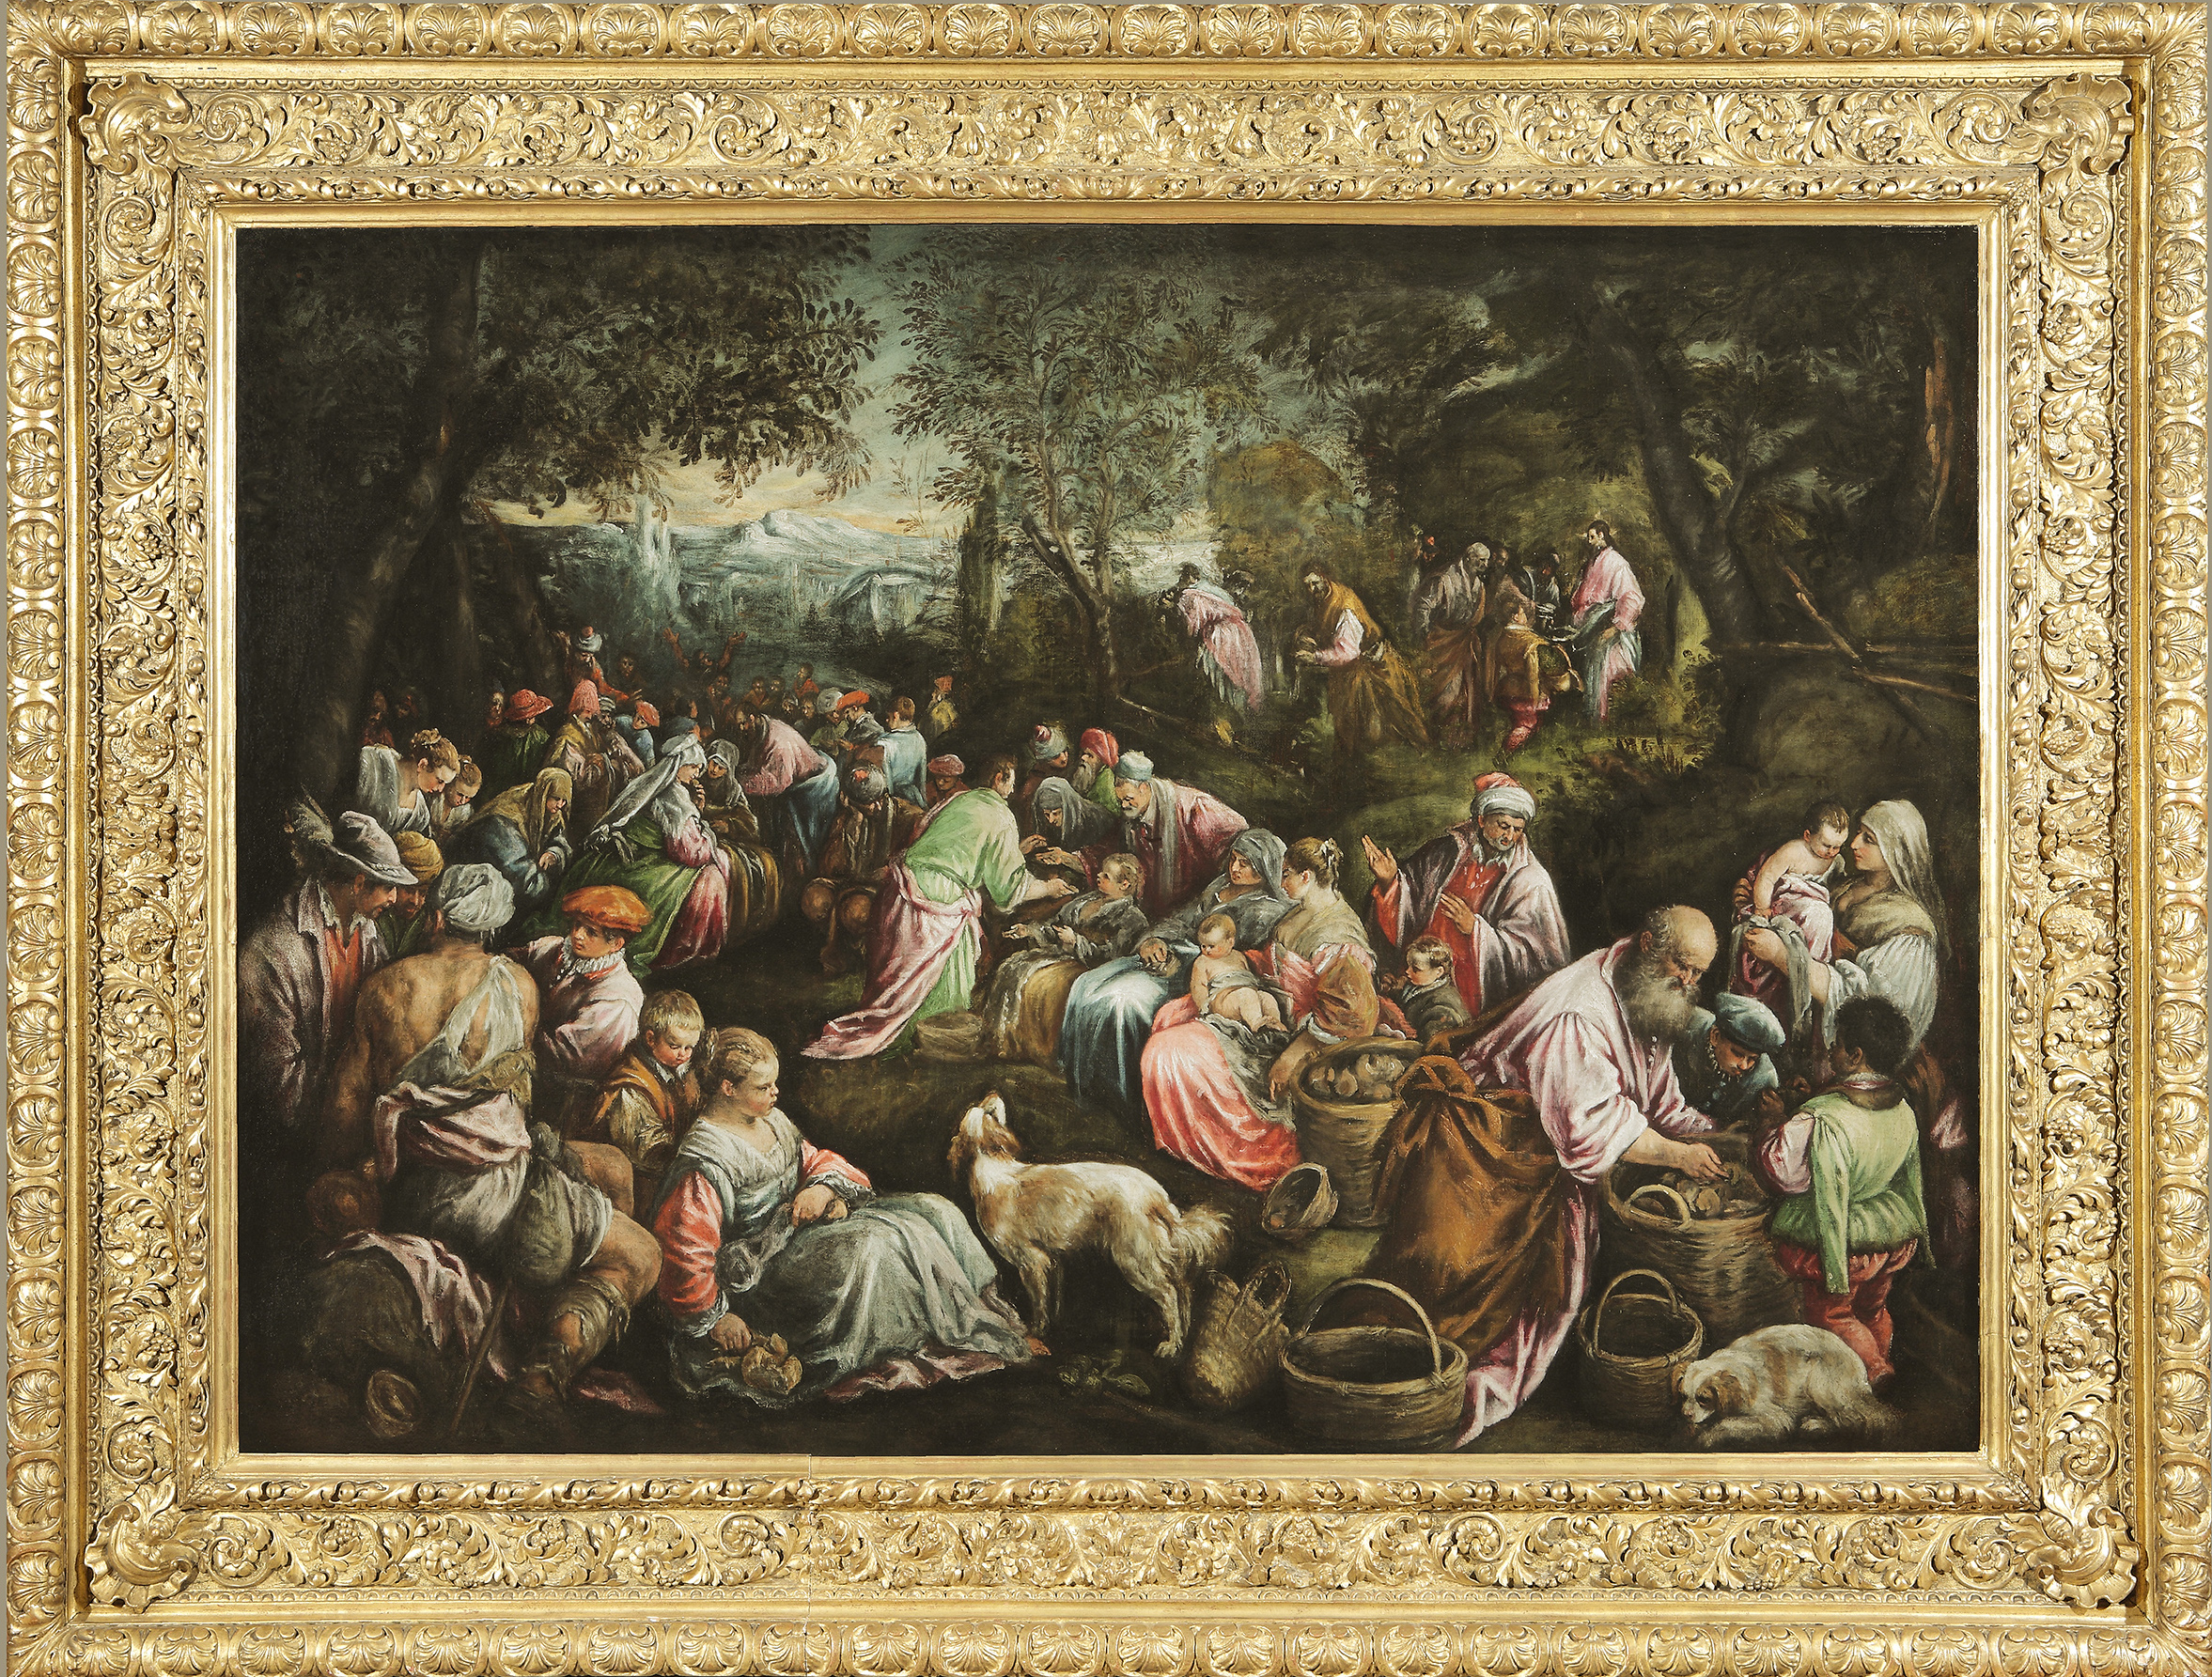 Jacopo da Ponte, called JACOPO BASSANO   (Bassano del Grappa, 1510 - 1592)    The Miracle of the Loaves and the Fishes    Oil on canvas 47 x 67 inches (119.5 x 170 cm)